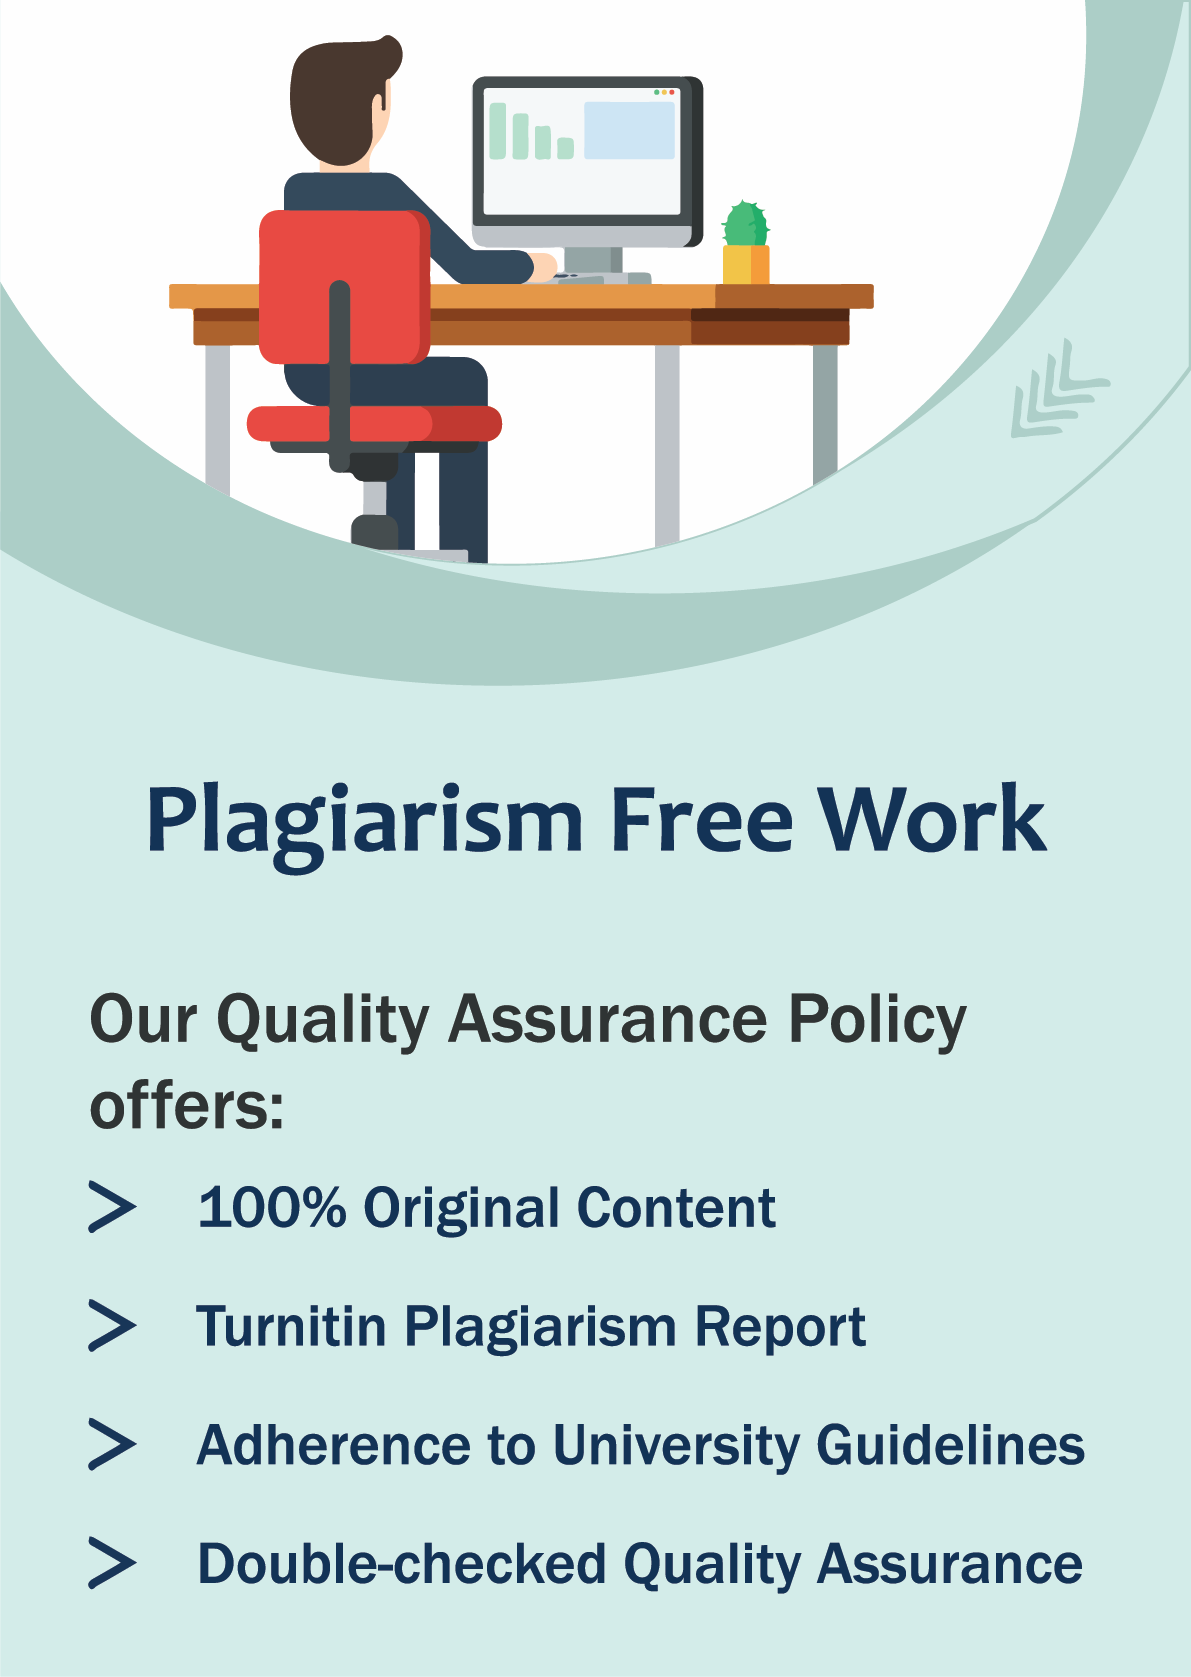 Plagiarism Free Work Our Quality Assurance Policy offers